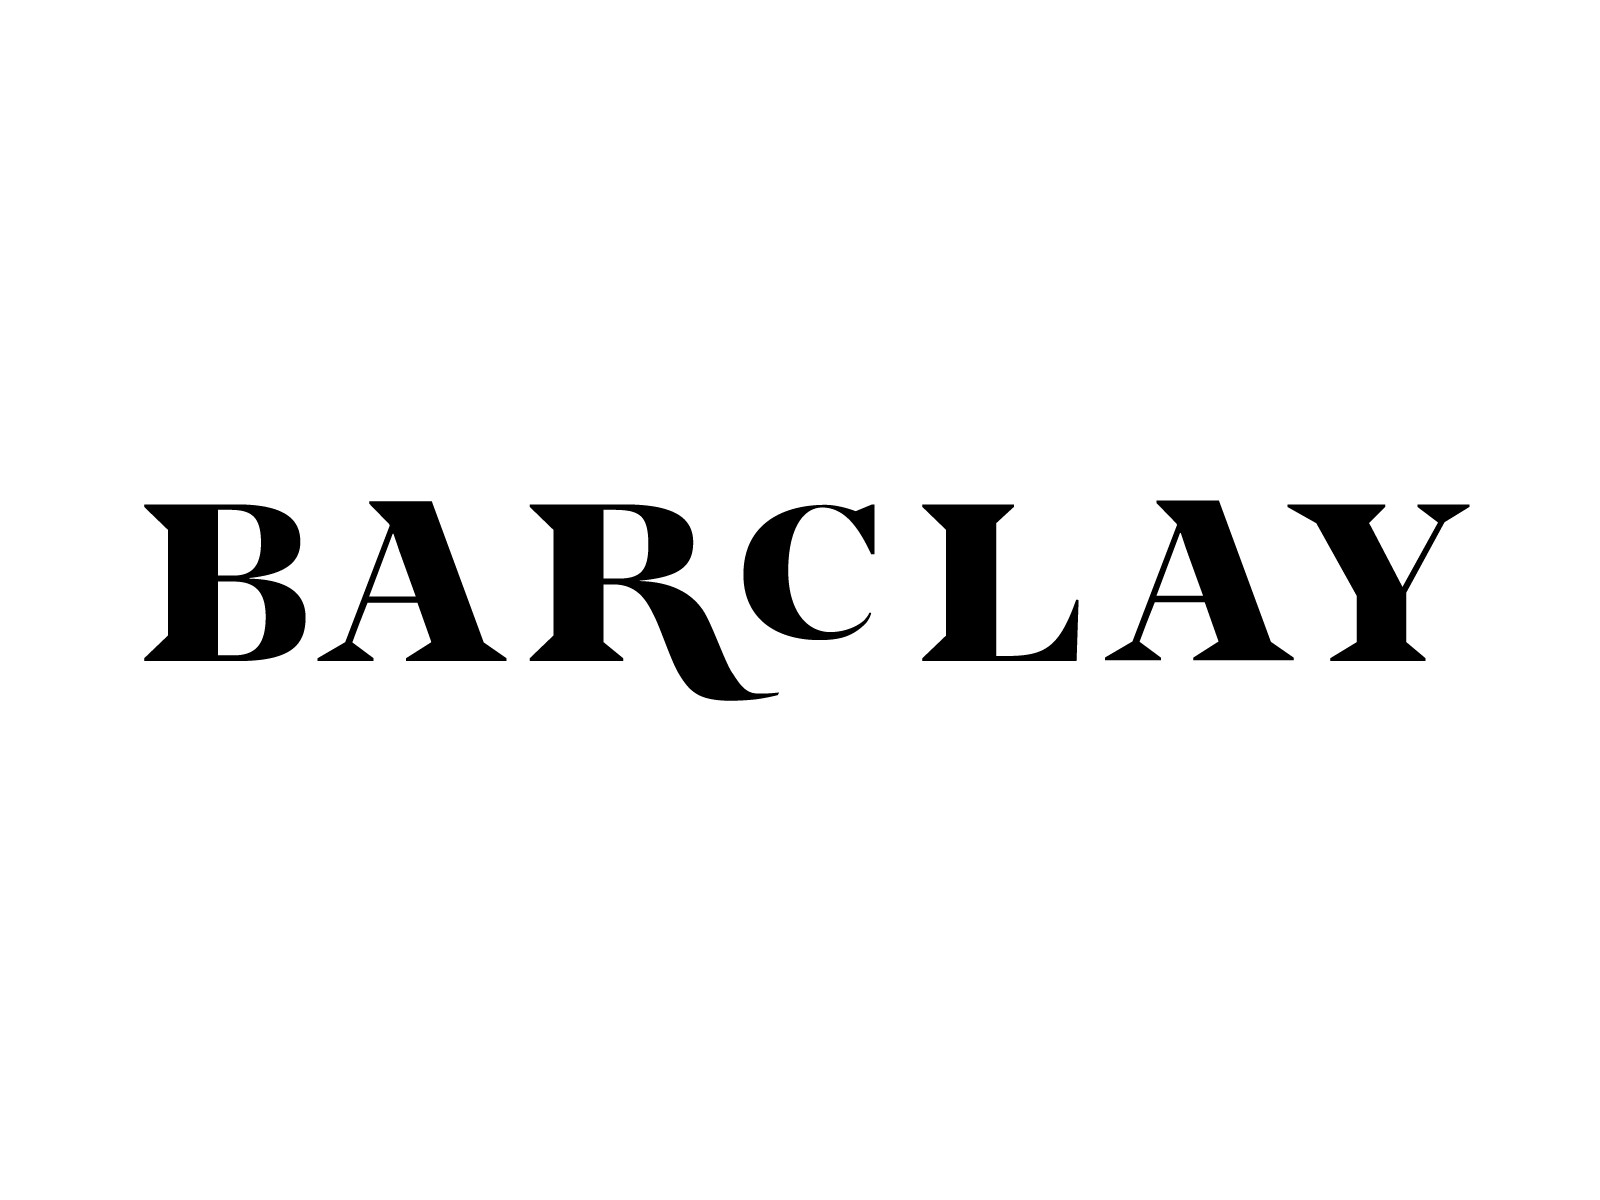 works_barcray_logo_01